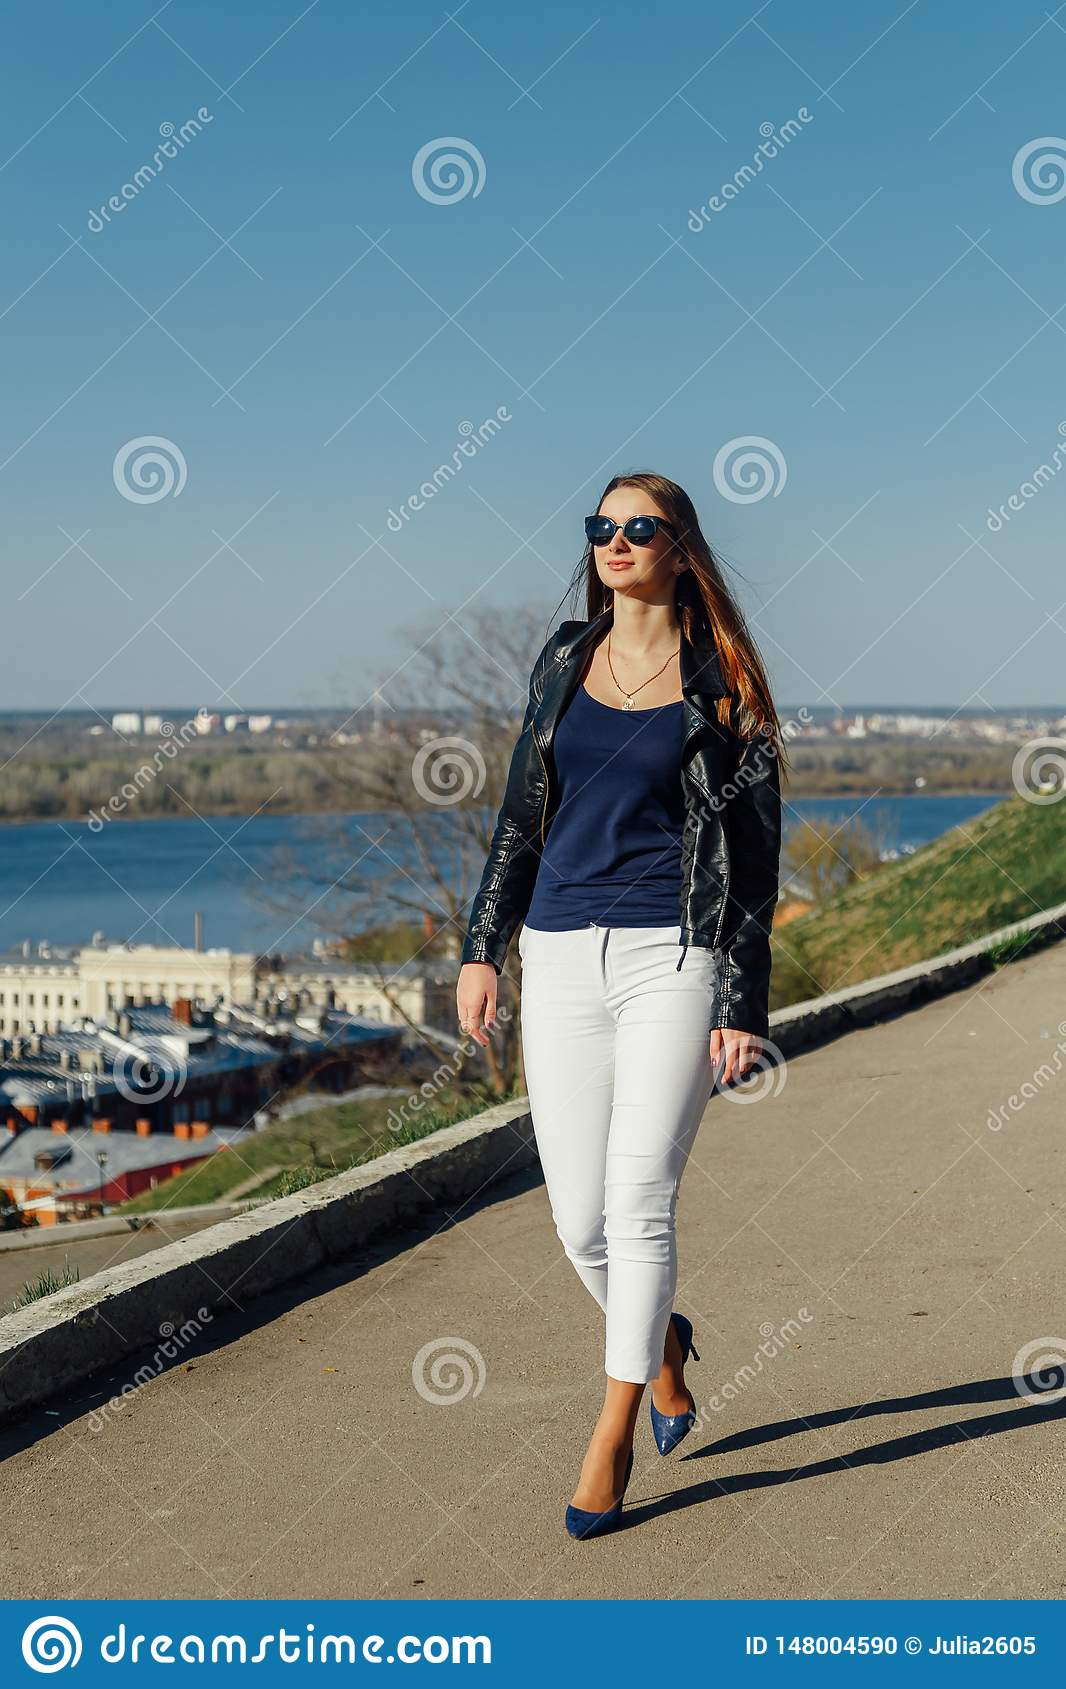 Portrait of a stylish dark-haired girl in sunglasses, she is in a leather jacket